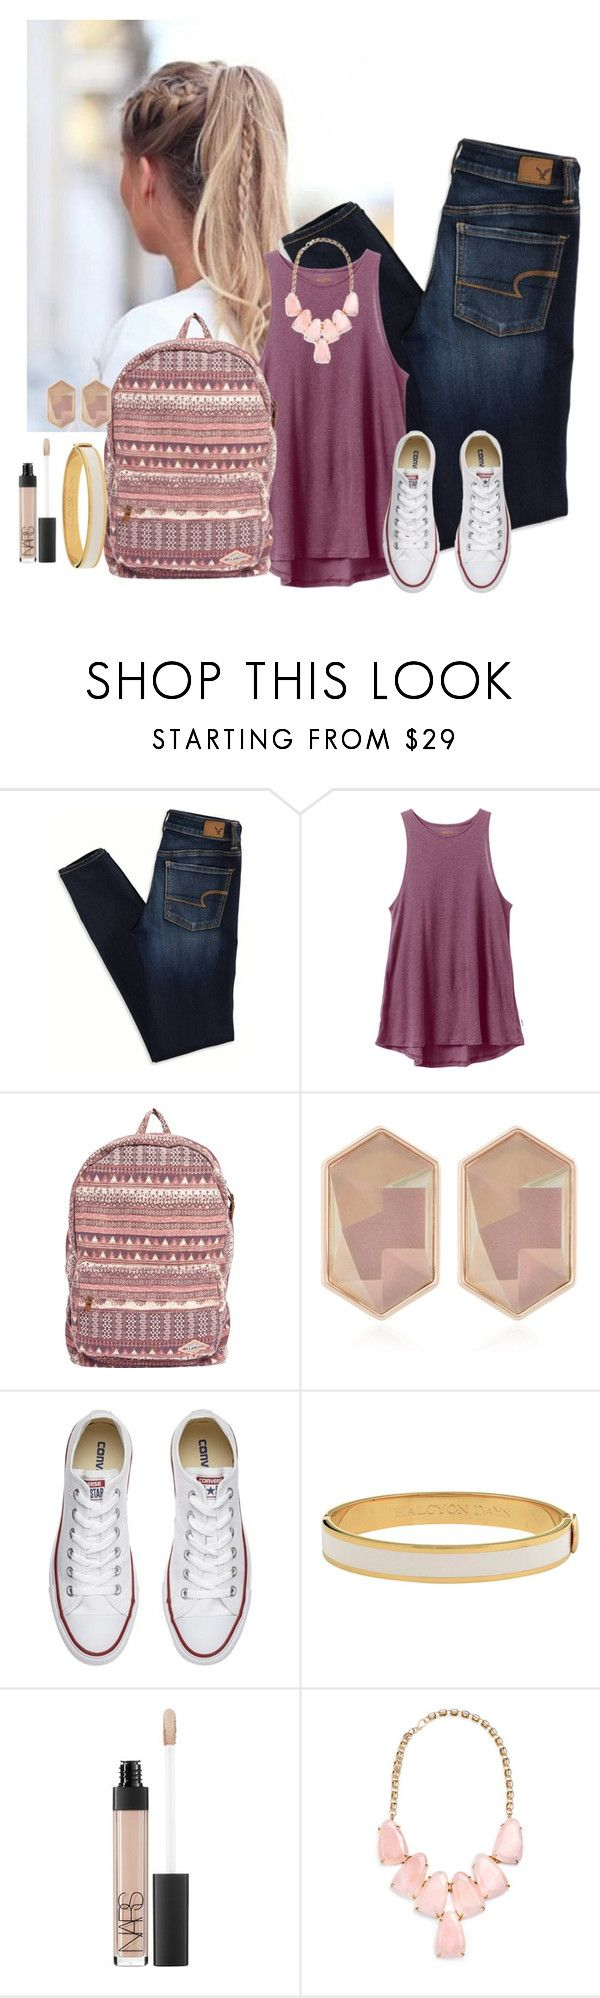 """""""Untitled #759"""" by aubreyspringer ❤ liked on Polyvore featuring American Eagle Outfitters, RVCA, Billabong, Nocturne, Converse, Halcyon Days, NARS Cosmetics and Kendra Scott"""